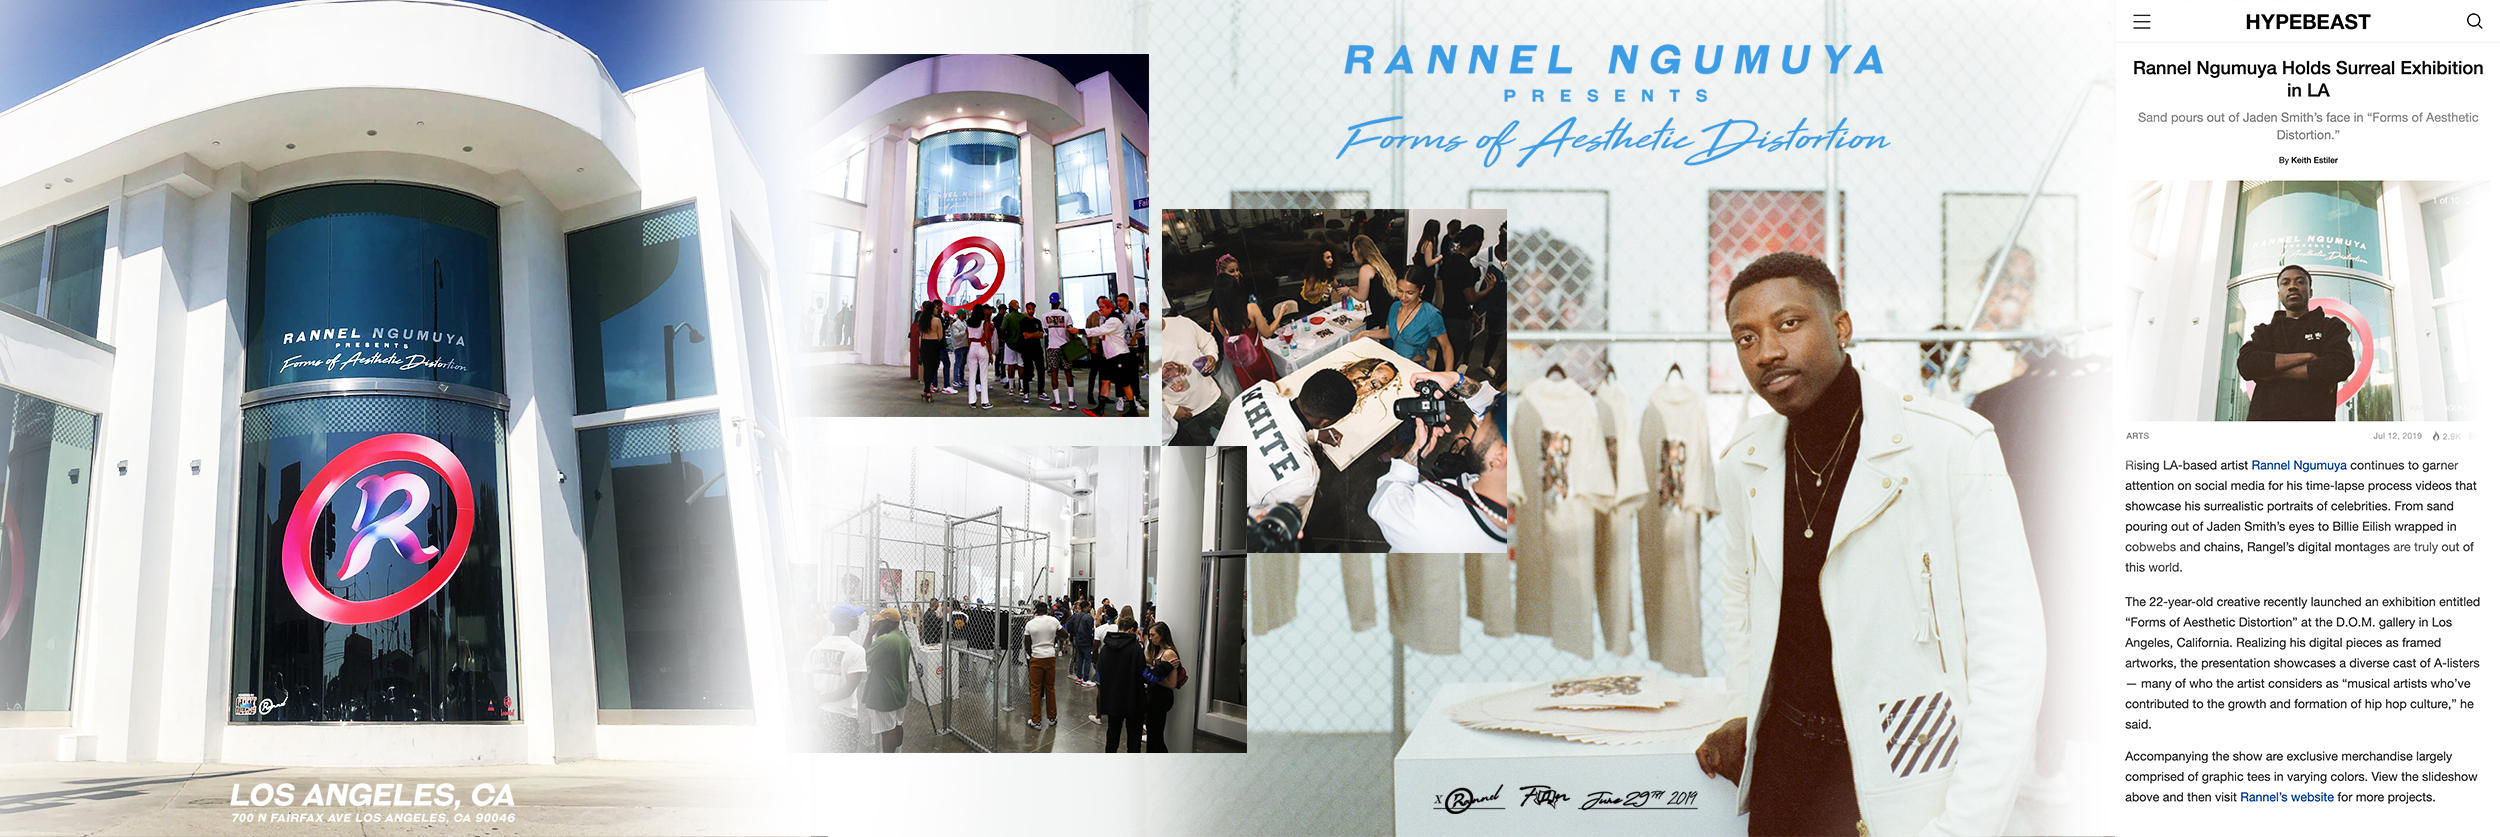 Rannel Ngumuya Gallery on 700 N Fairfax Ave. in partnership with F.O.N Agency, Lomotif, & DOM Gallery. ( Grand opening on June 29th, 2019 )